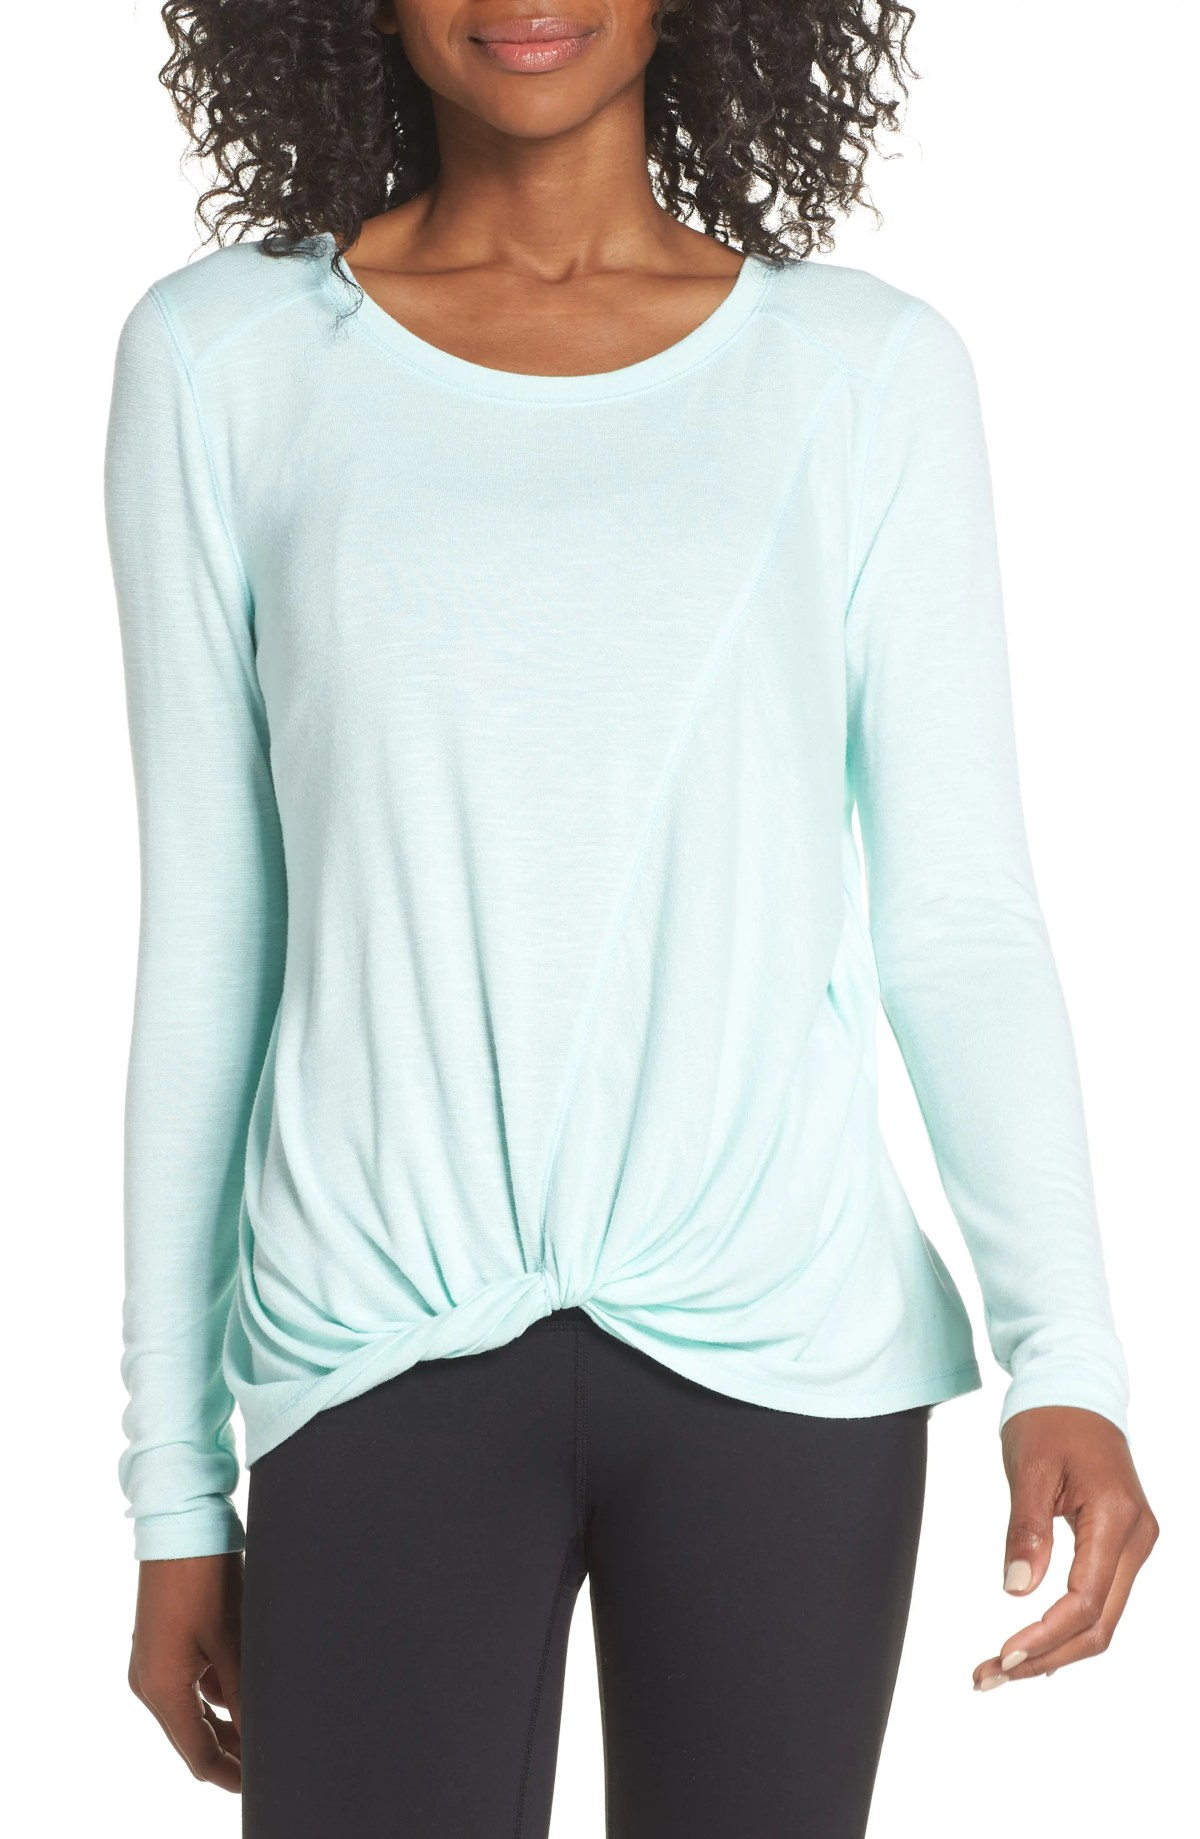 ZELLA Twisty Turn Tee, Main, color, TEAL FAIR